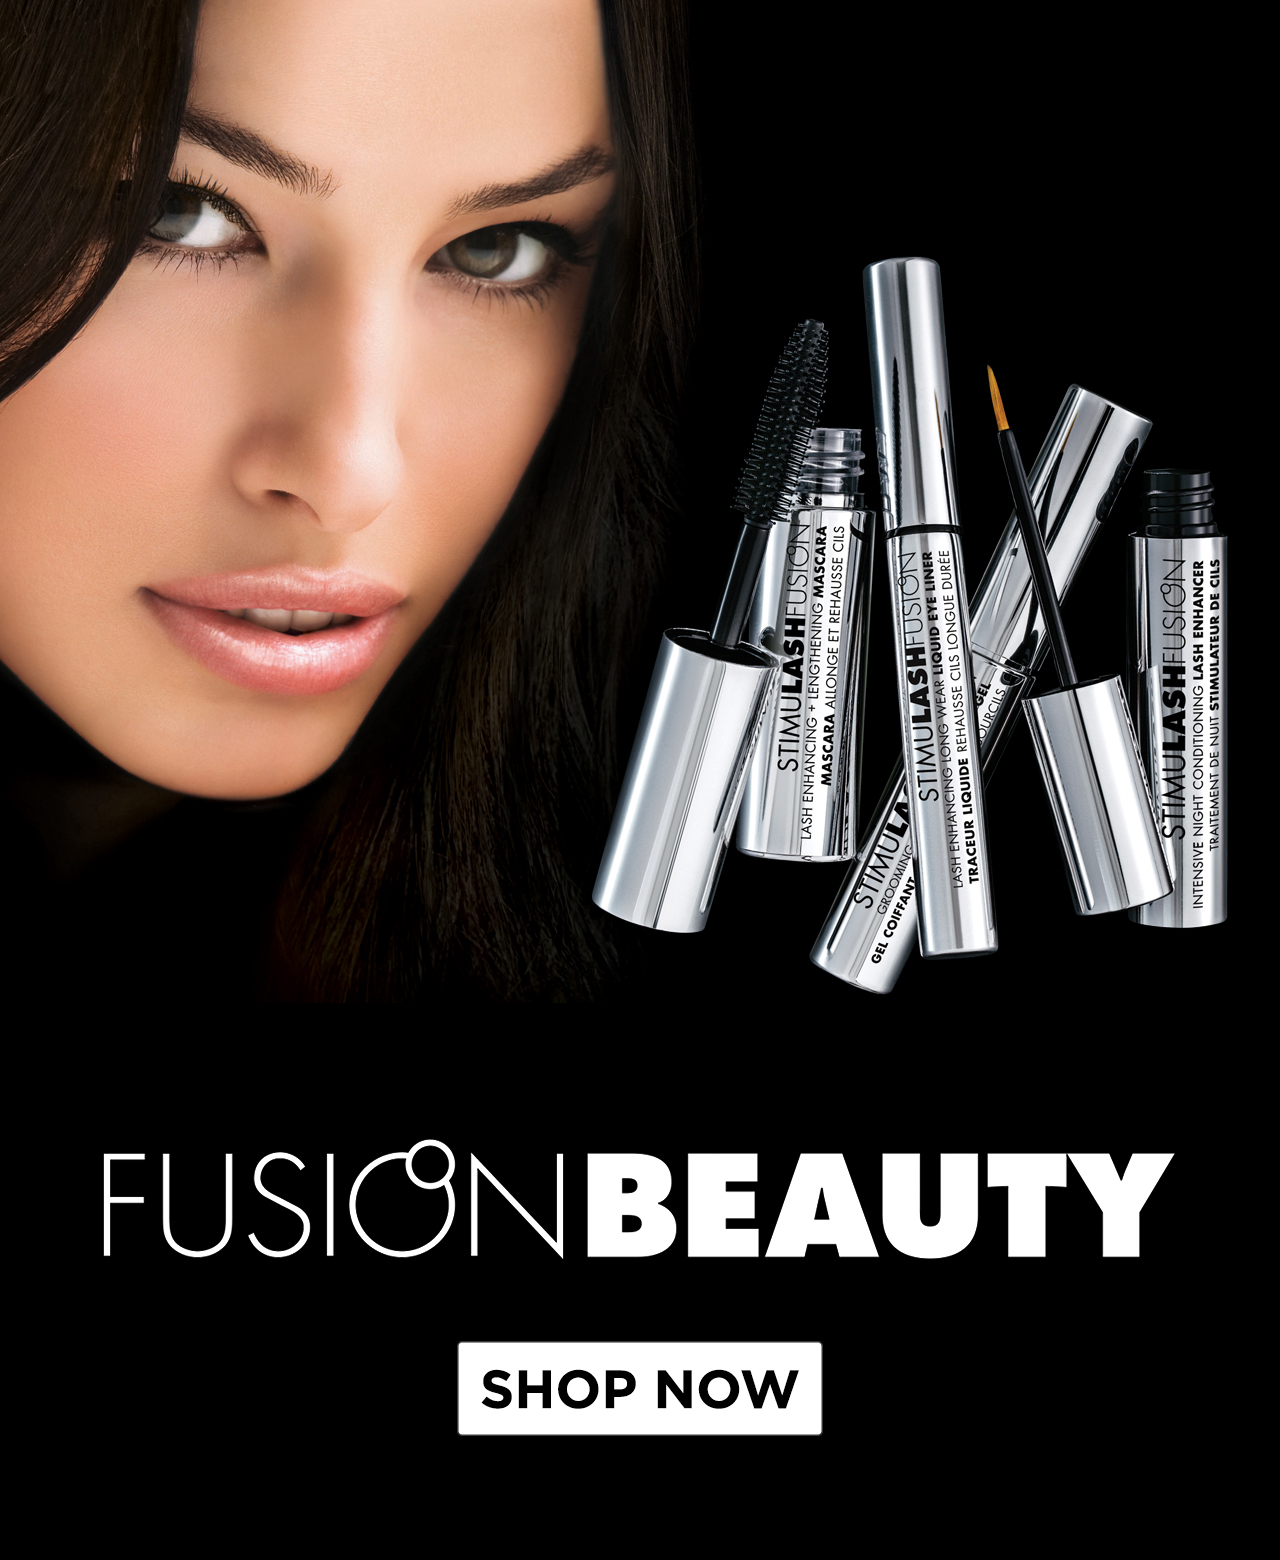 Fusion Beauty Stimulash Fusion Shop Now